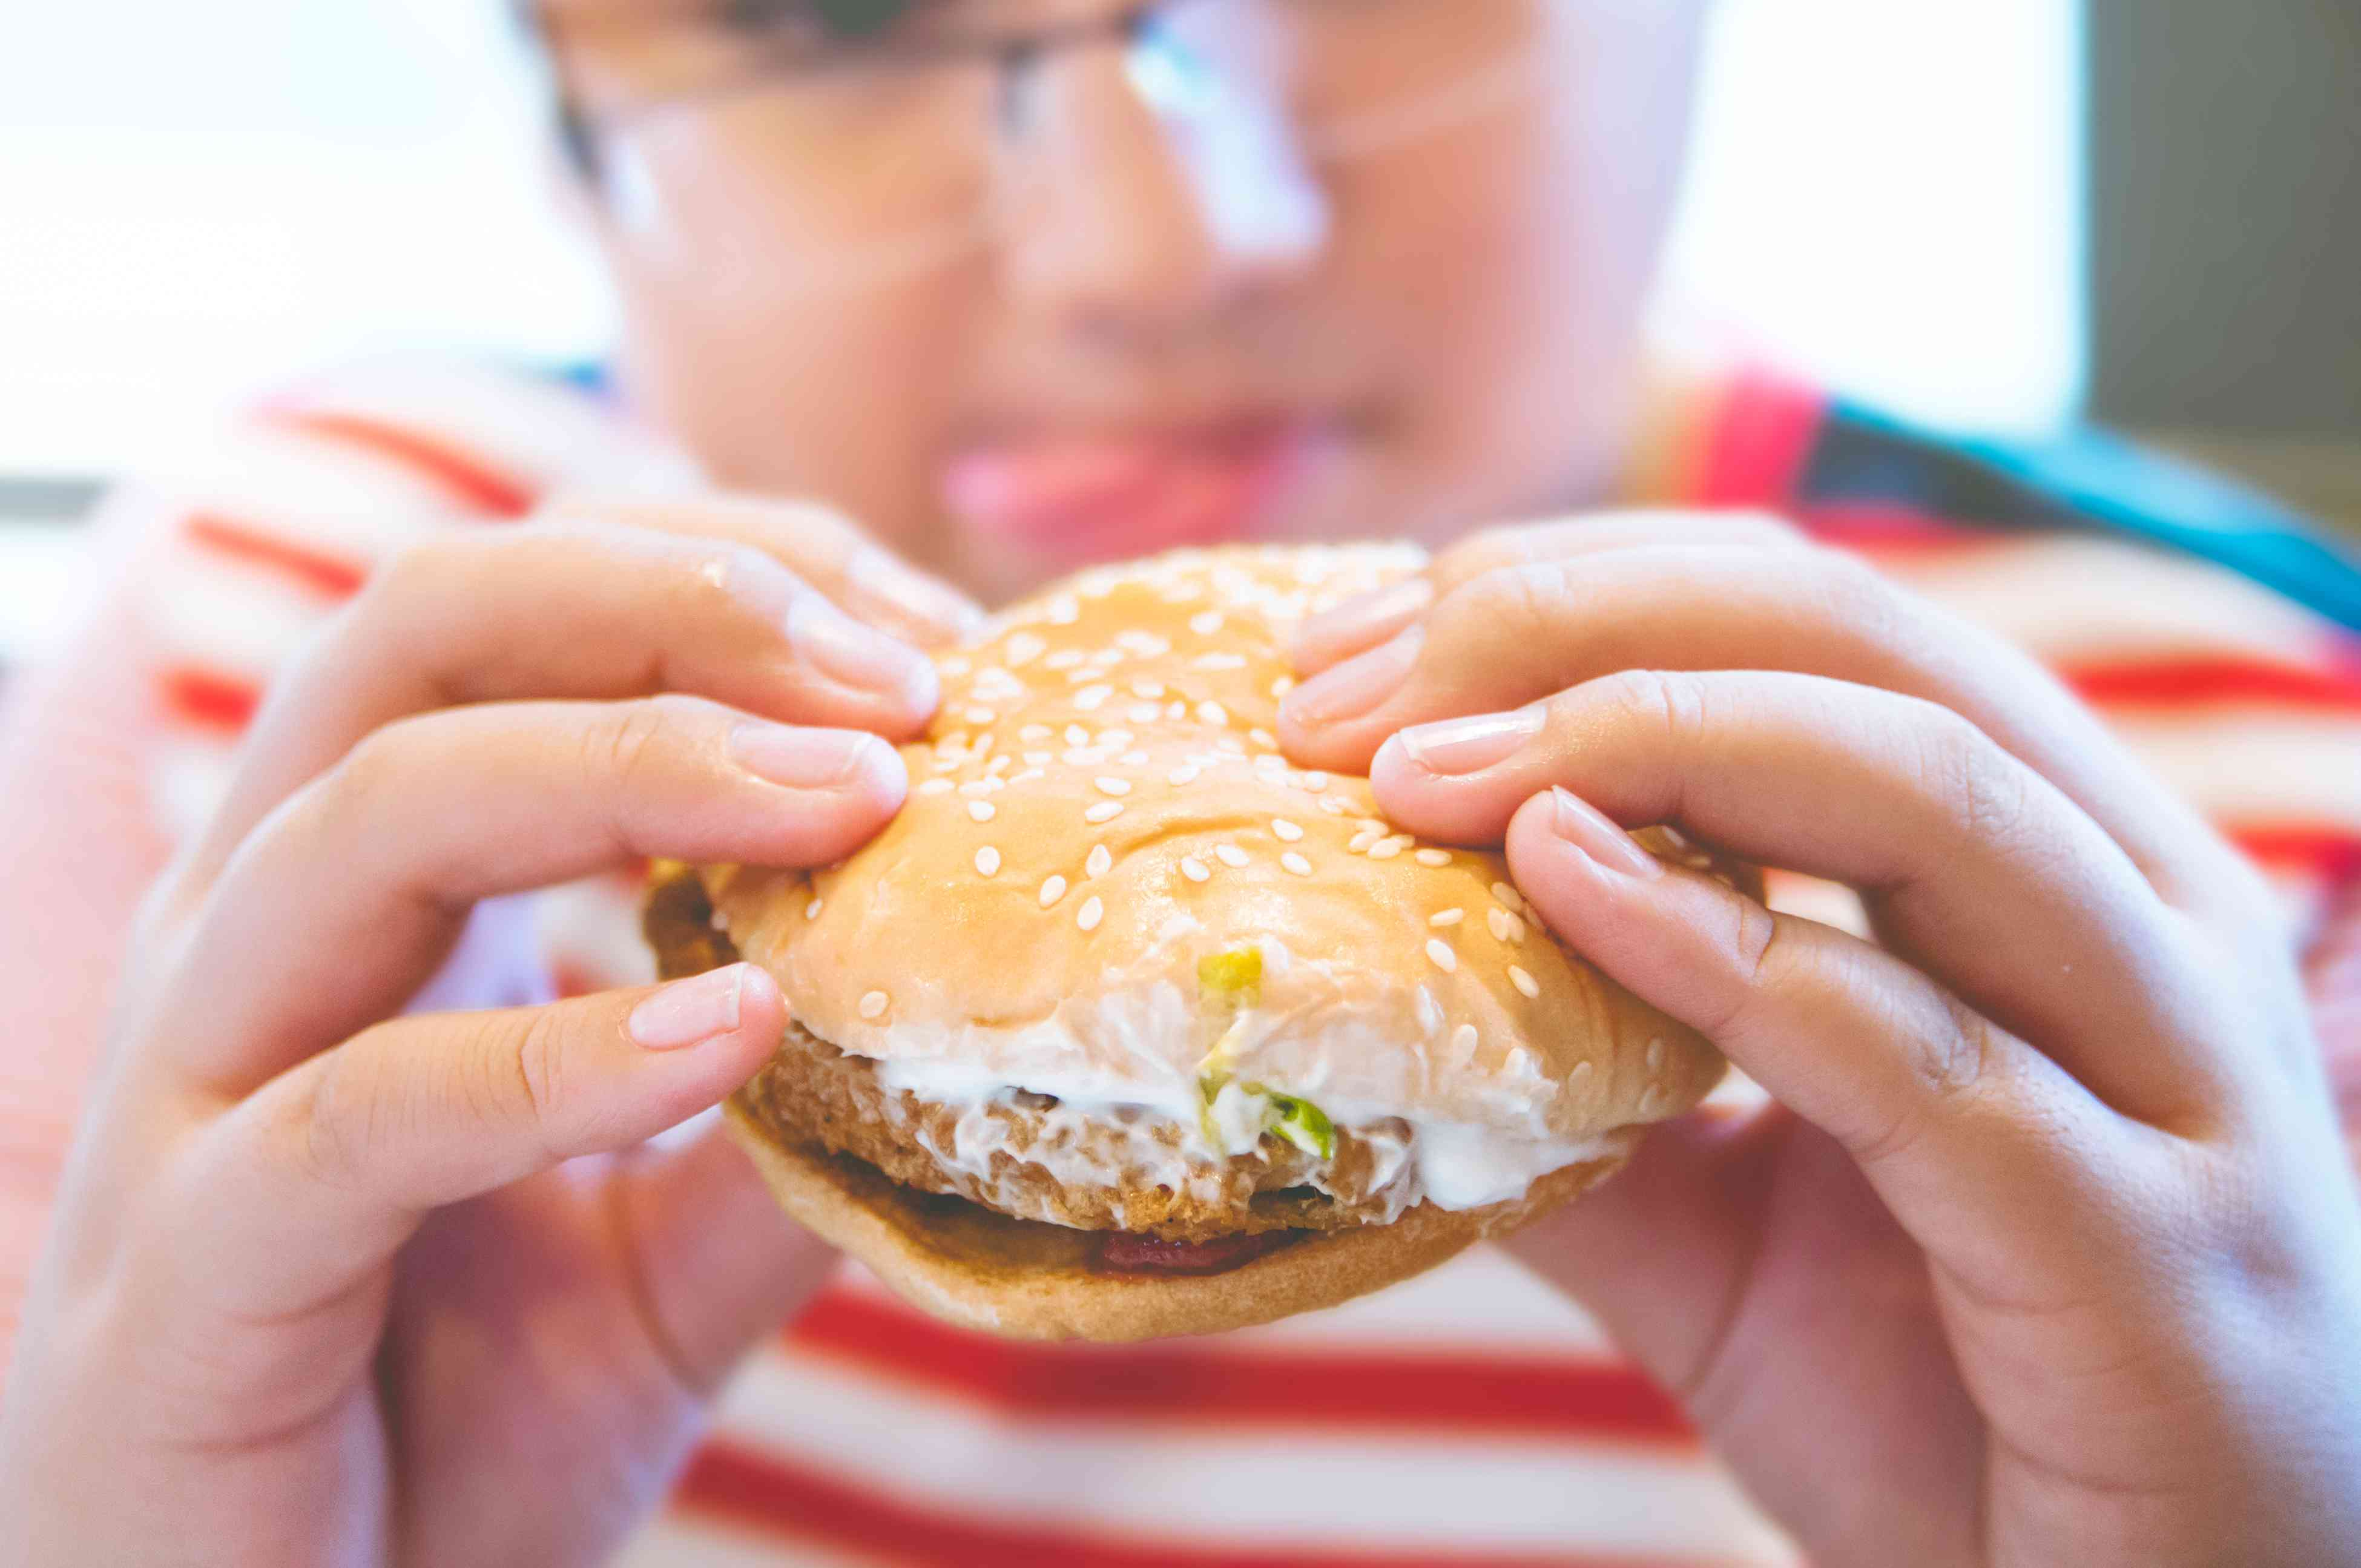 Young man in a striped shirt eating hamburger, focus on the burger